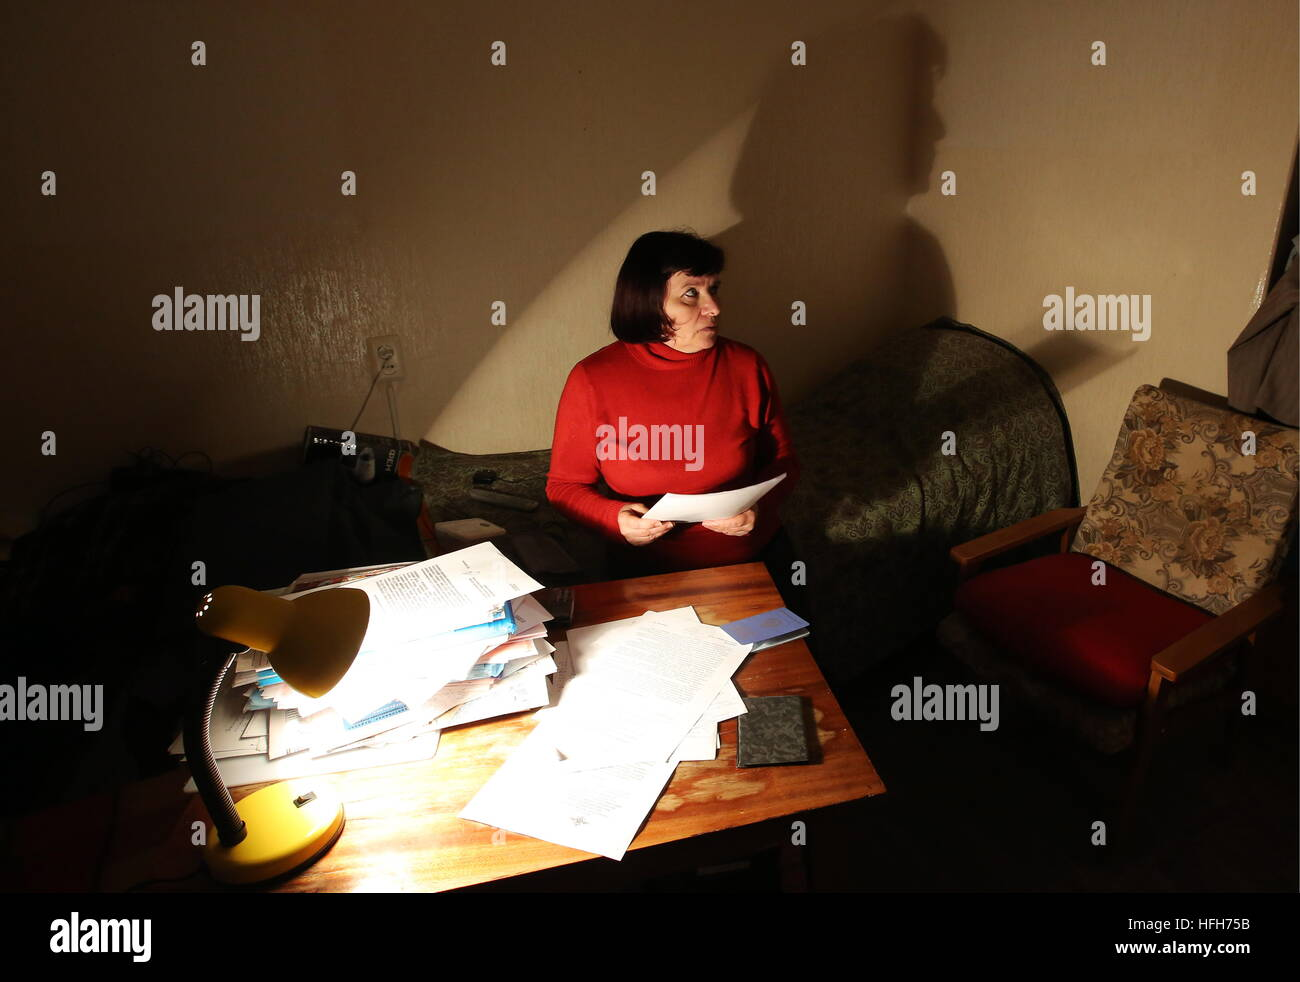 Office 2016 Kopen Prokopenko Stock Photos Prokopenko Stock Images Page 2 Alamy